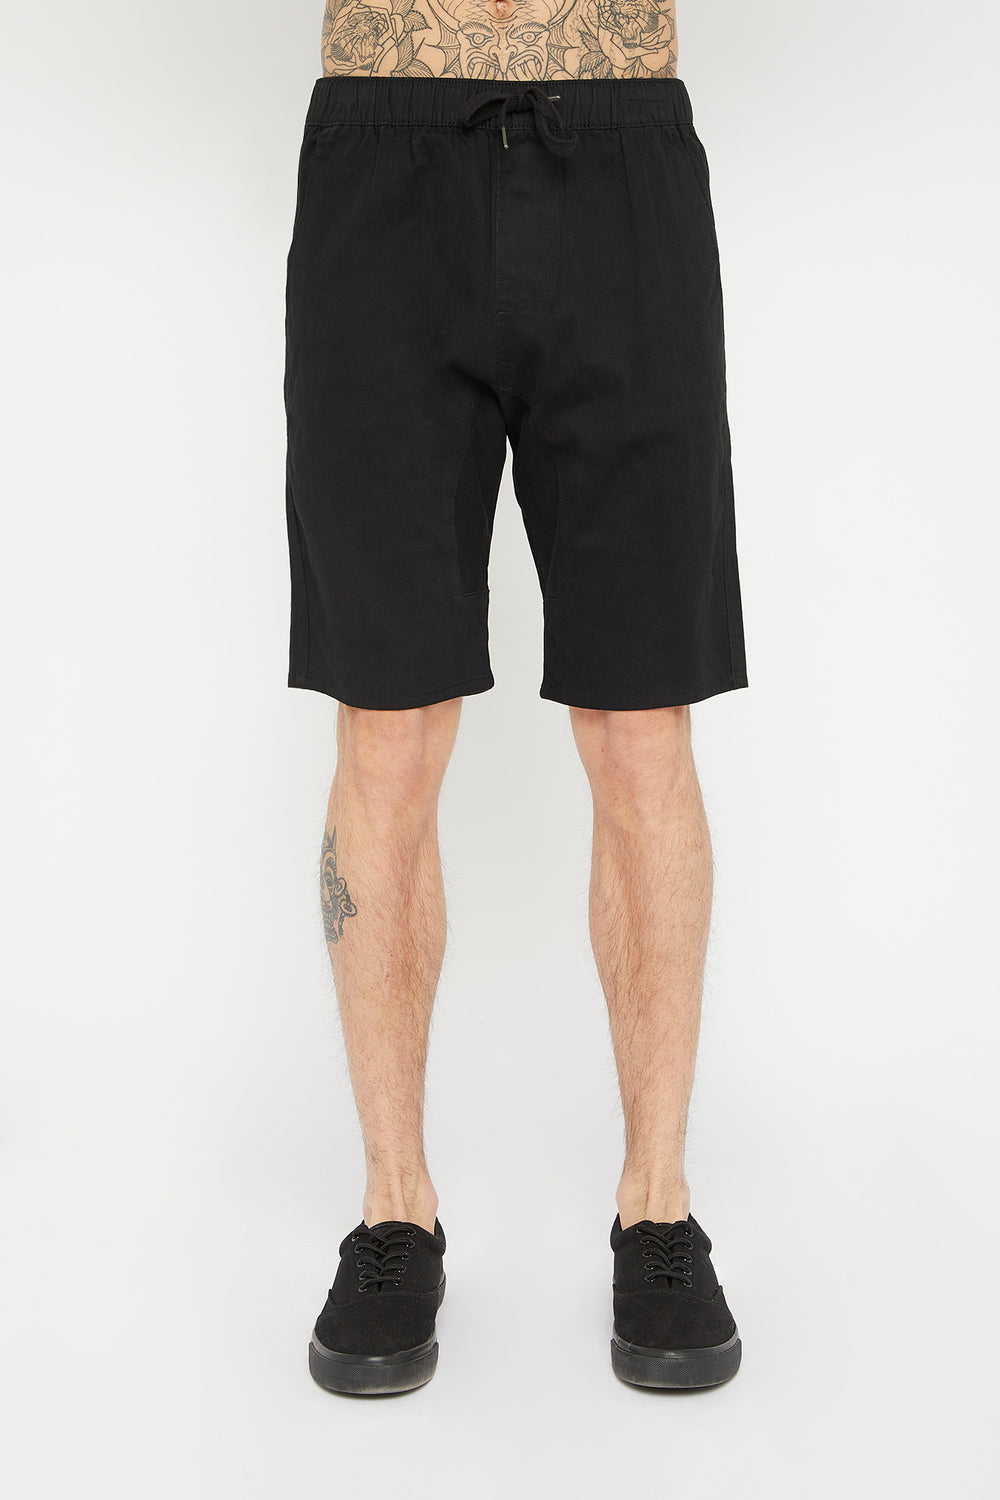 West49 Mens Solid Twill Jogger Short Black